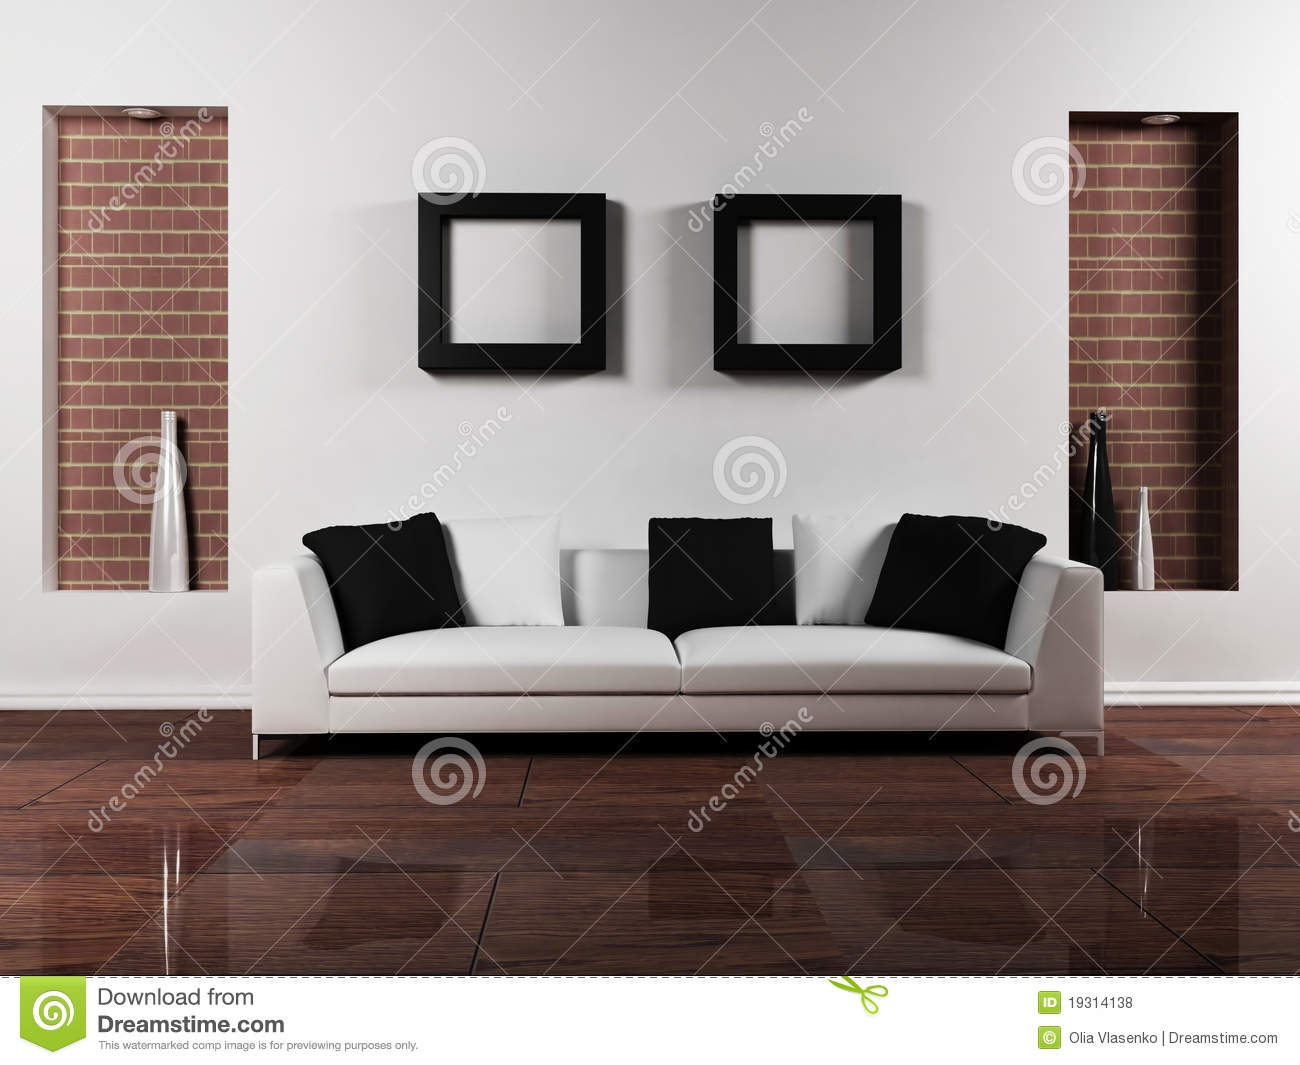 Modern interior design of living room royalty free stock for New interior design for drawing room